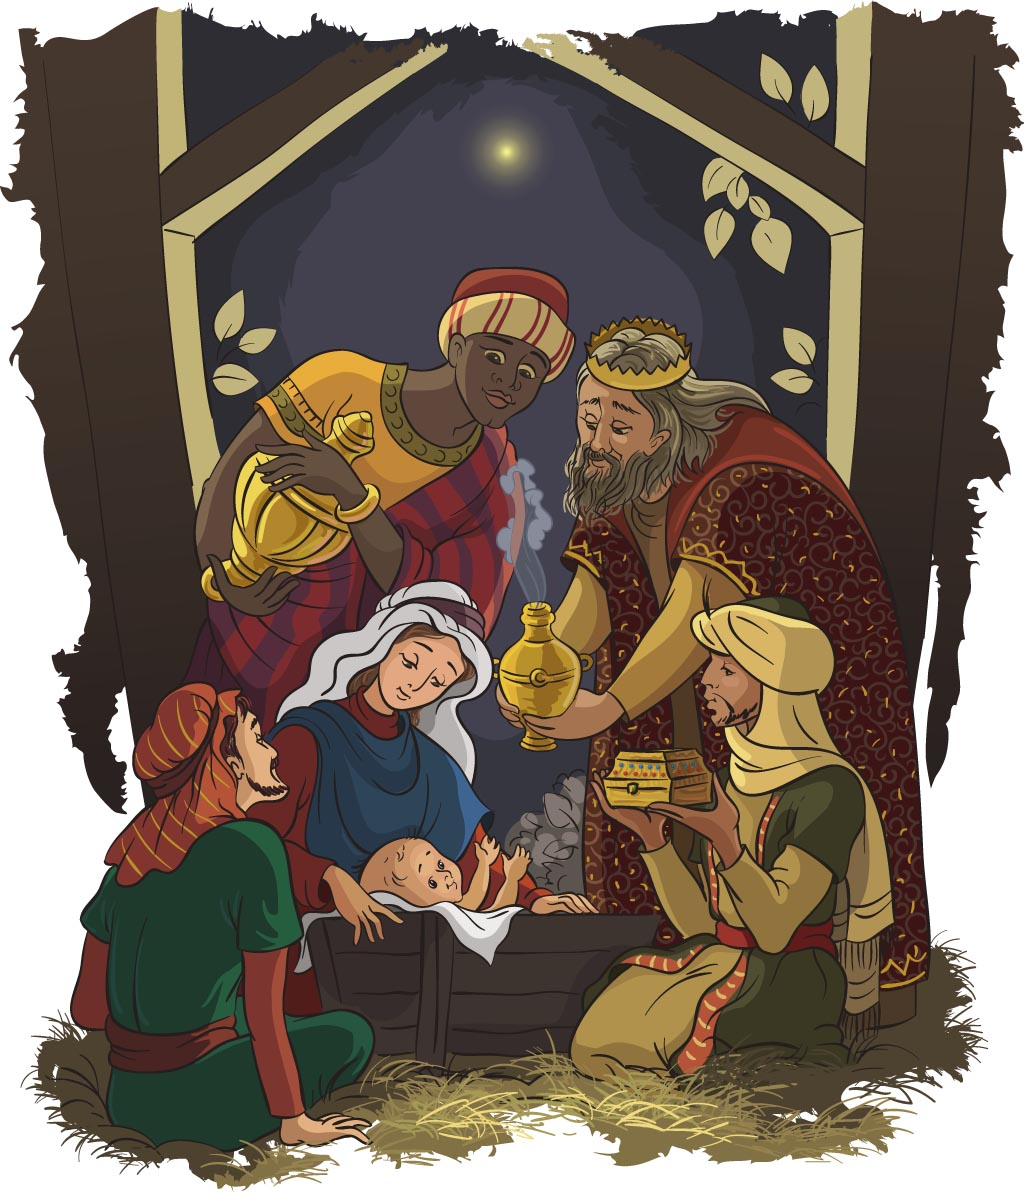 Nativity scene:  Jesus, Mary, Joseph and the three kings